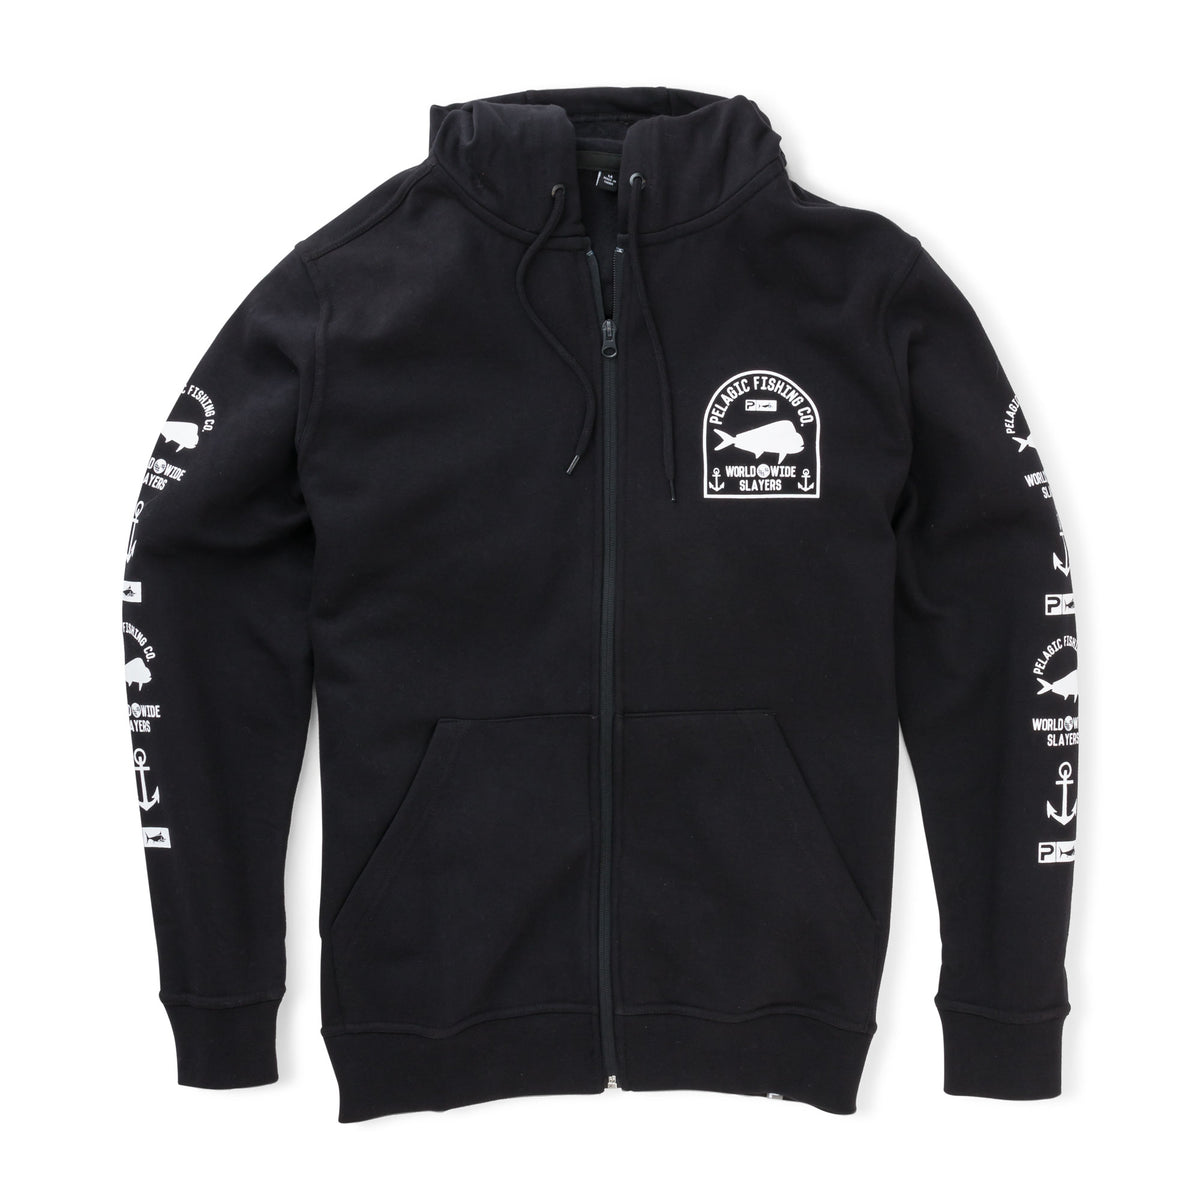 Worldwide Slayer Zip Hoodie Big Image - 2